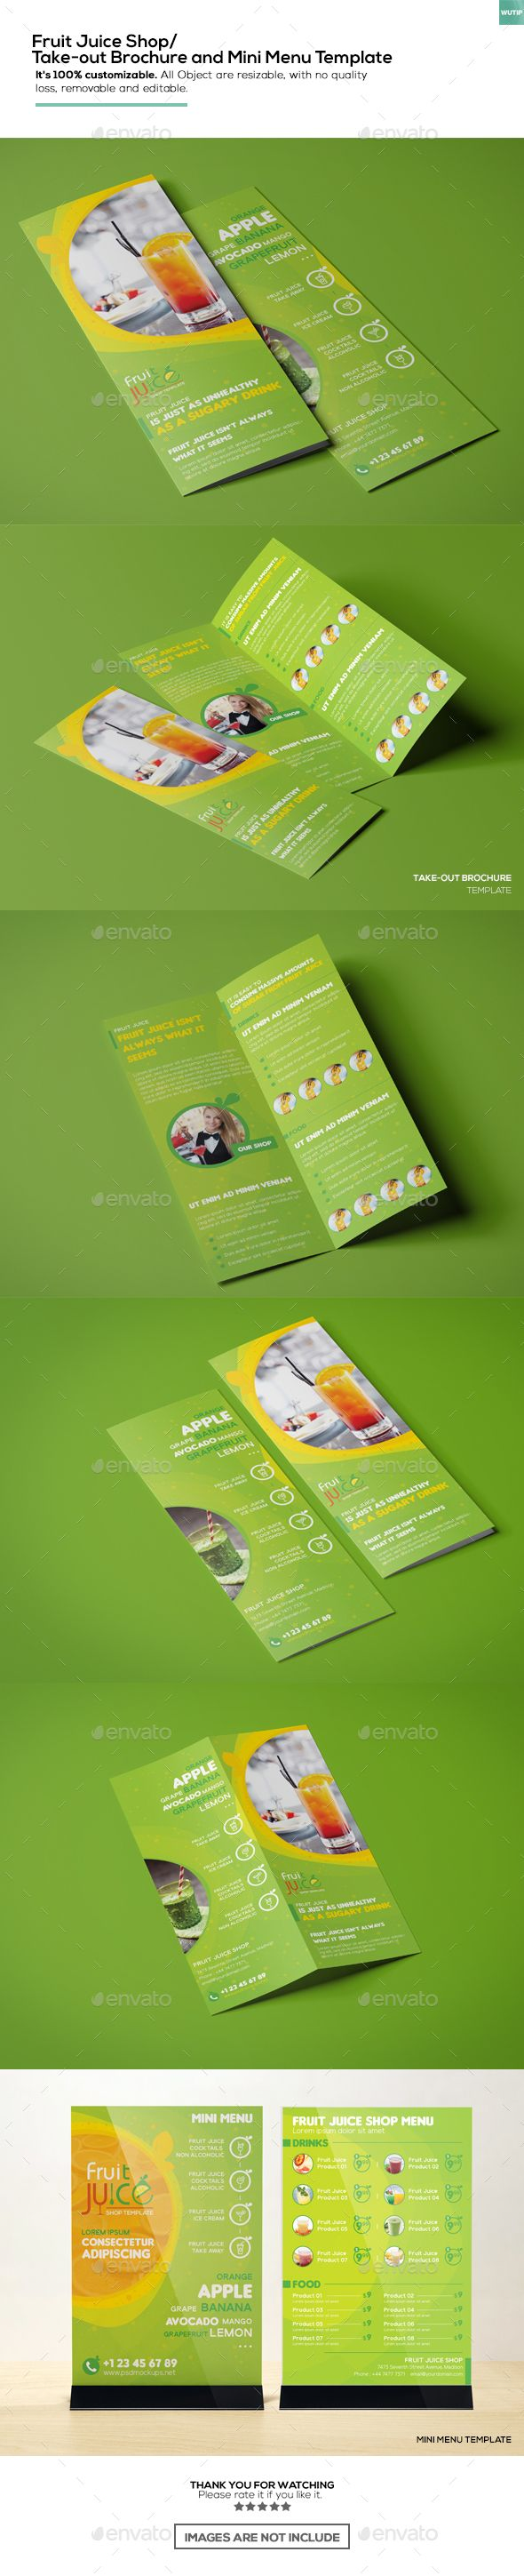 Fruit Juice Shop Takeout Brochure And Mini Menu Template Menu - Mini brochure template